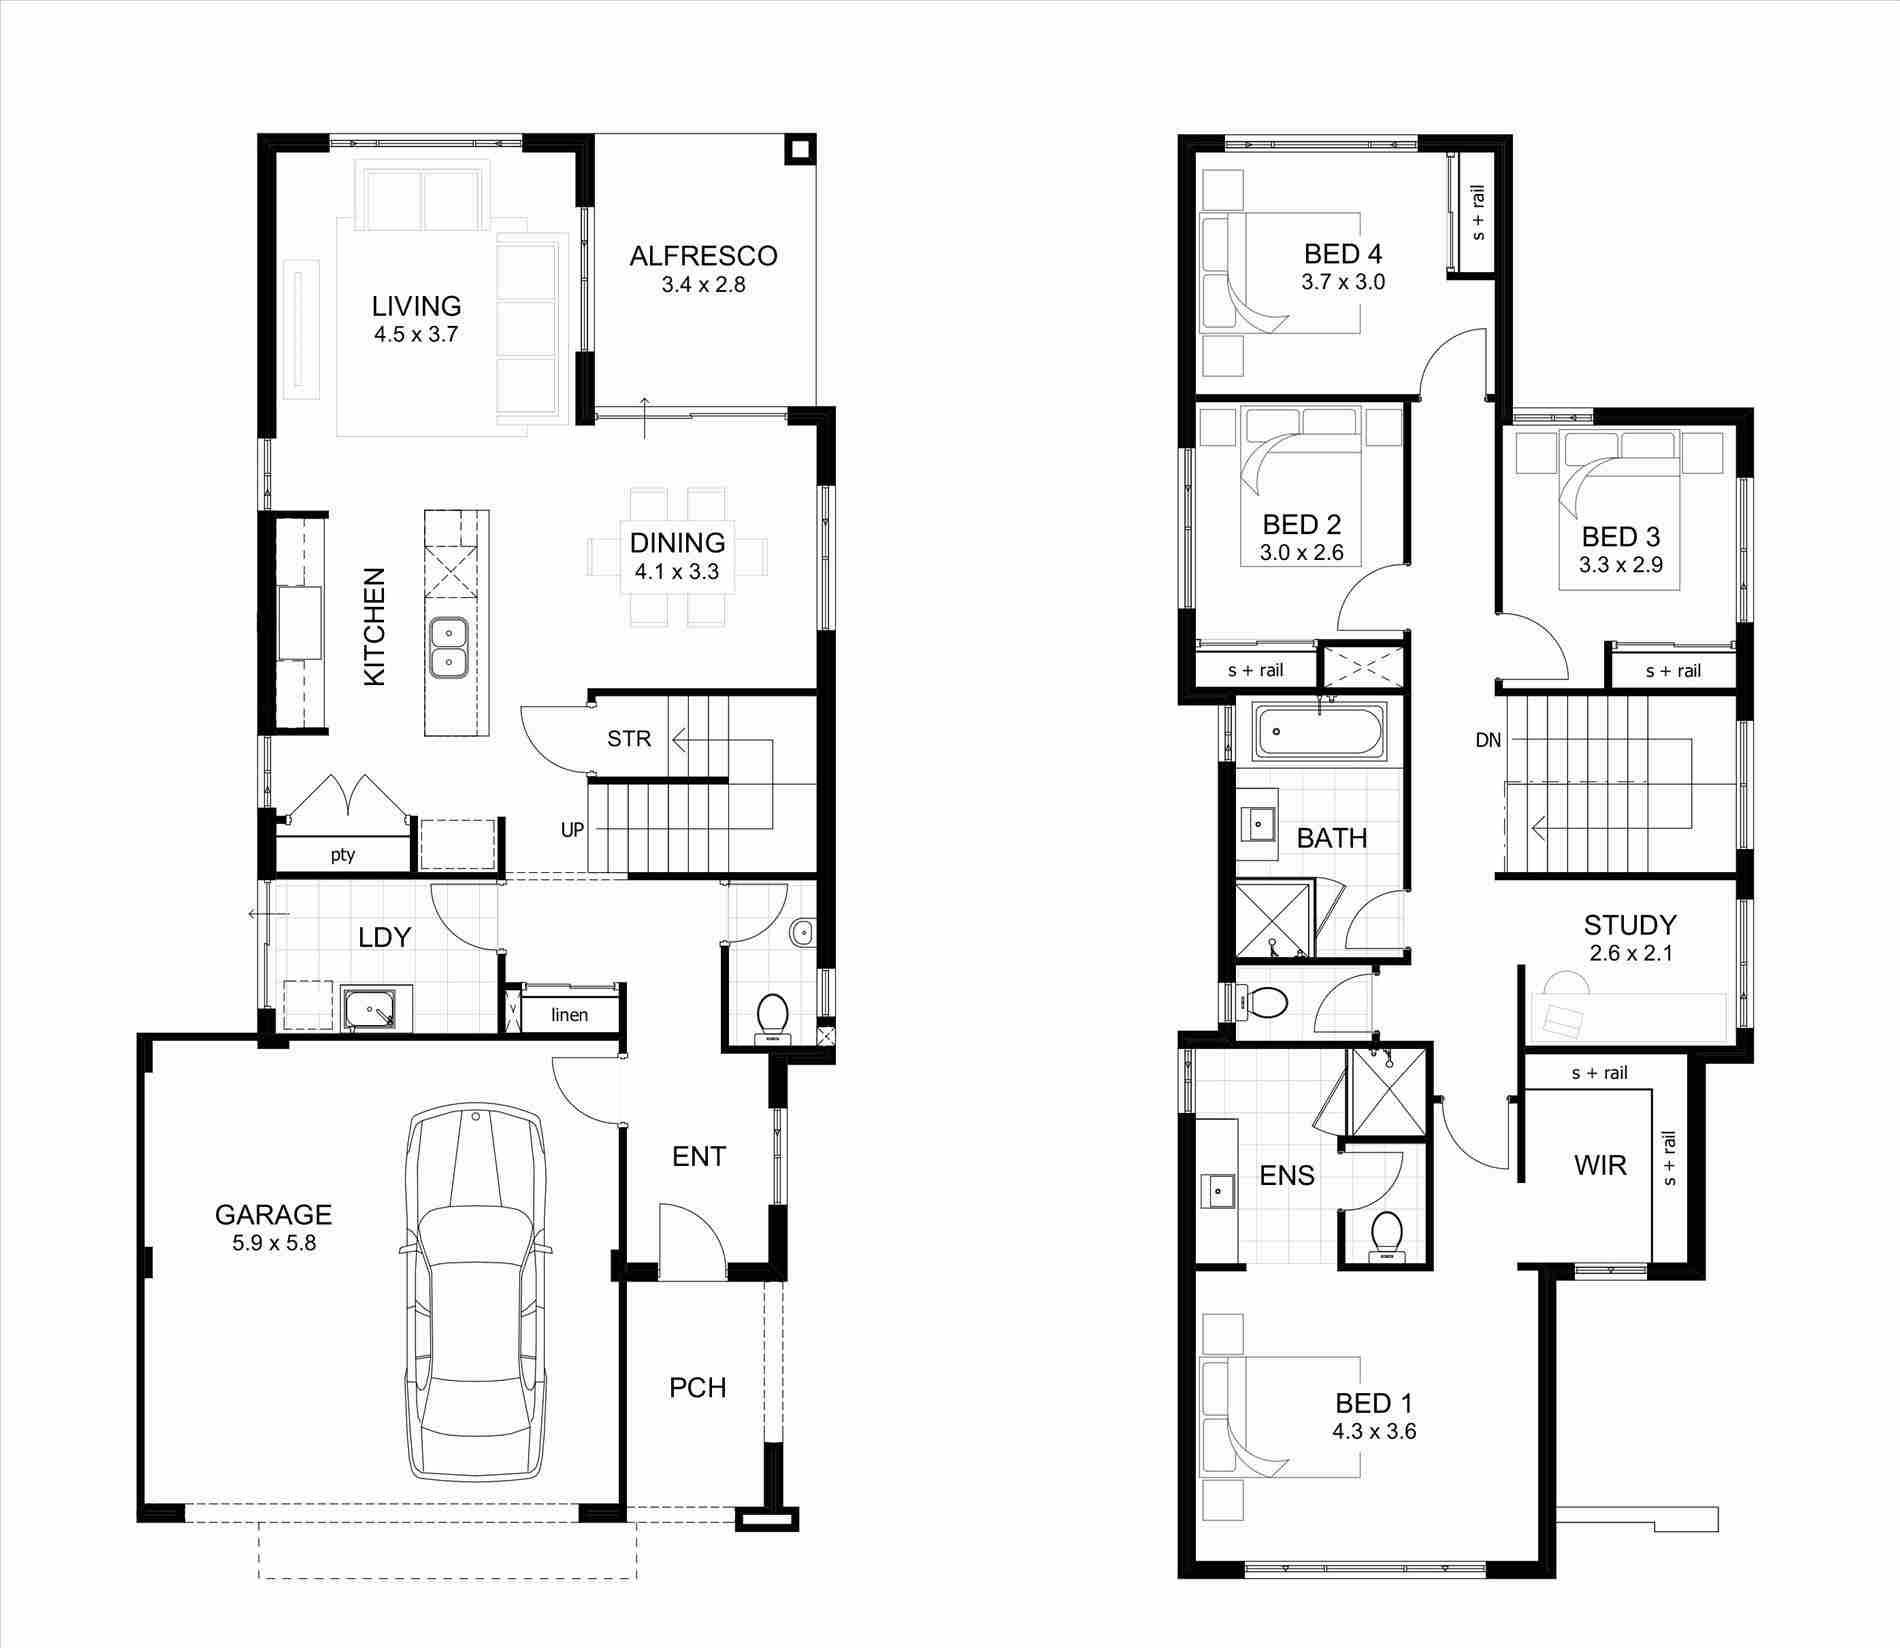 Http Mna Events Com 2 Storey House Floor Plan Html Double Storey House Plans 4 Bedroom House Plans Double Storey House